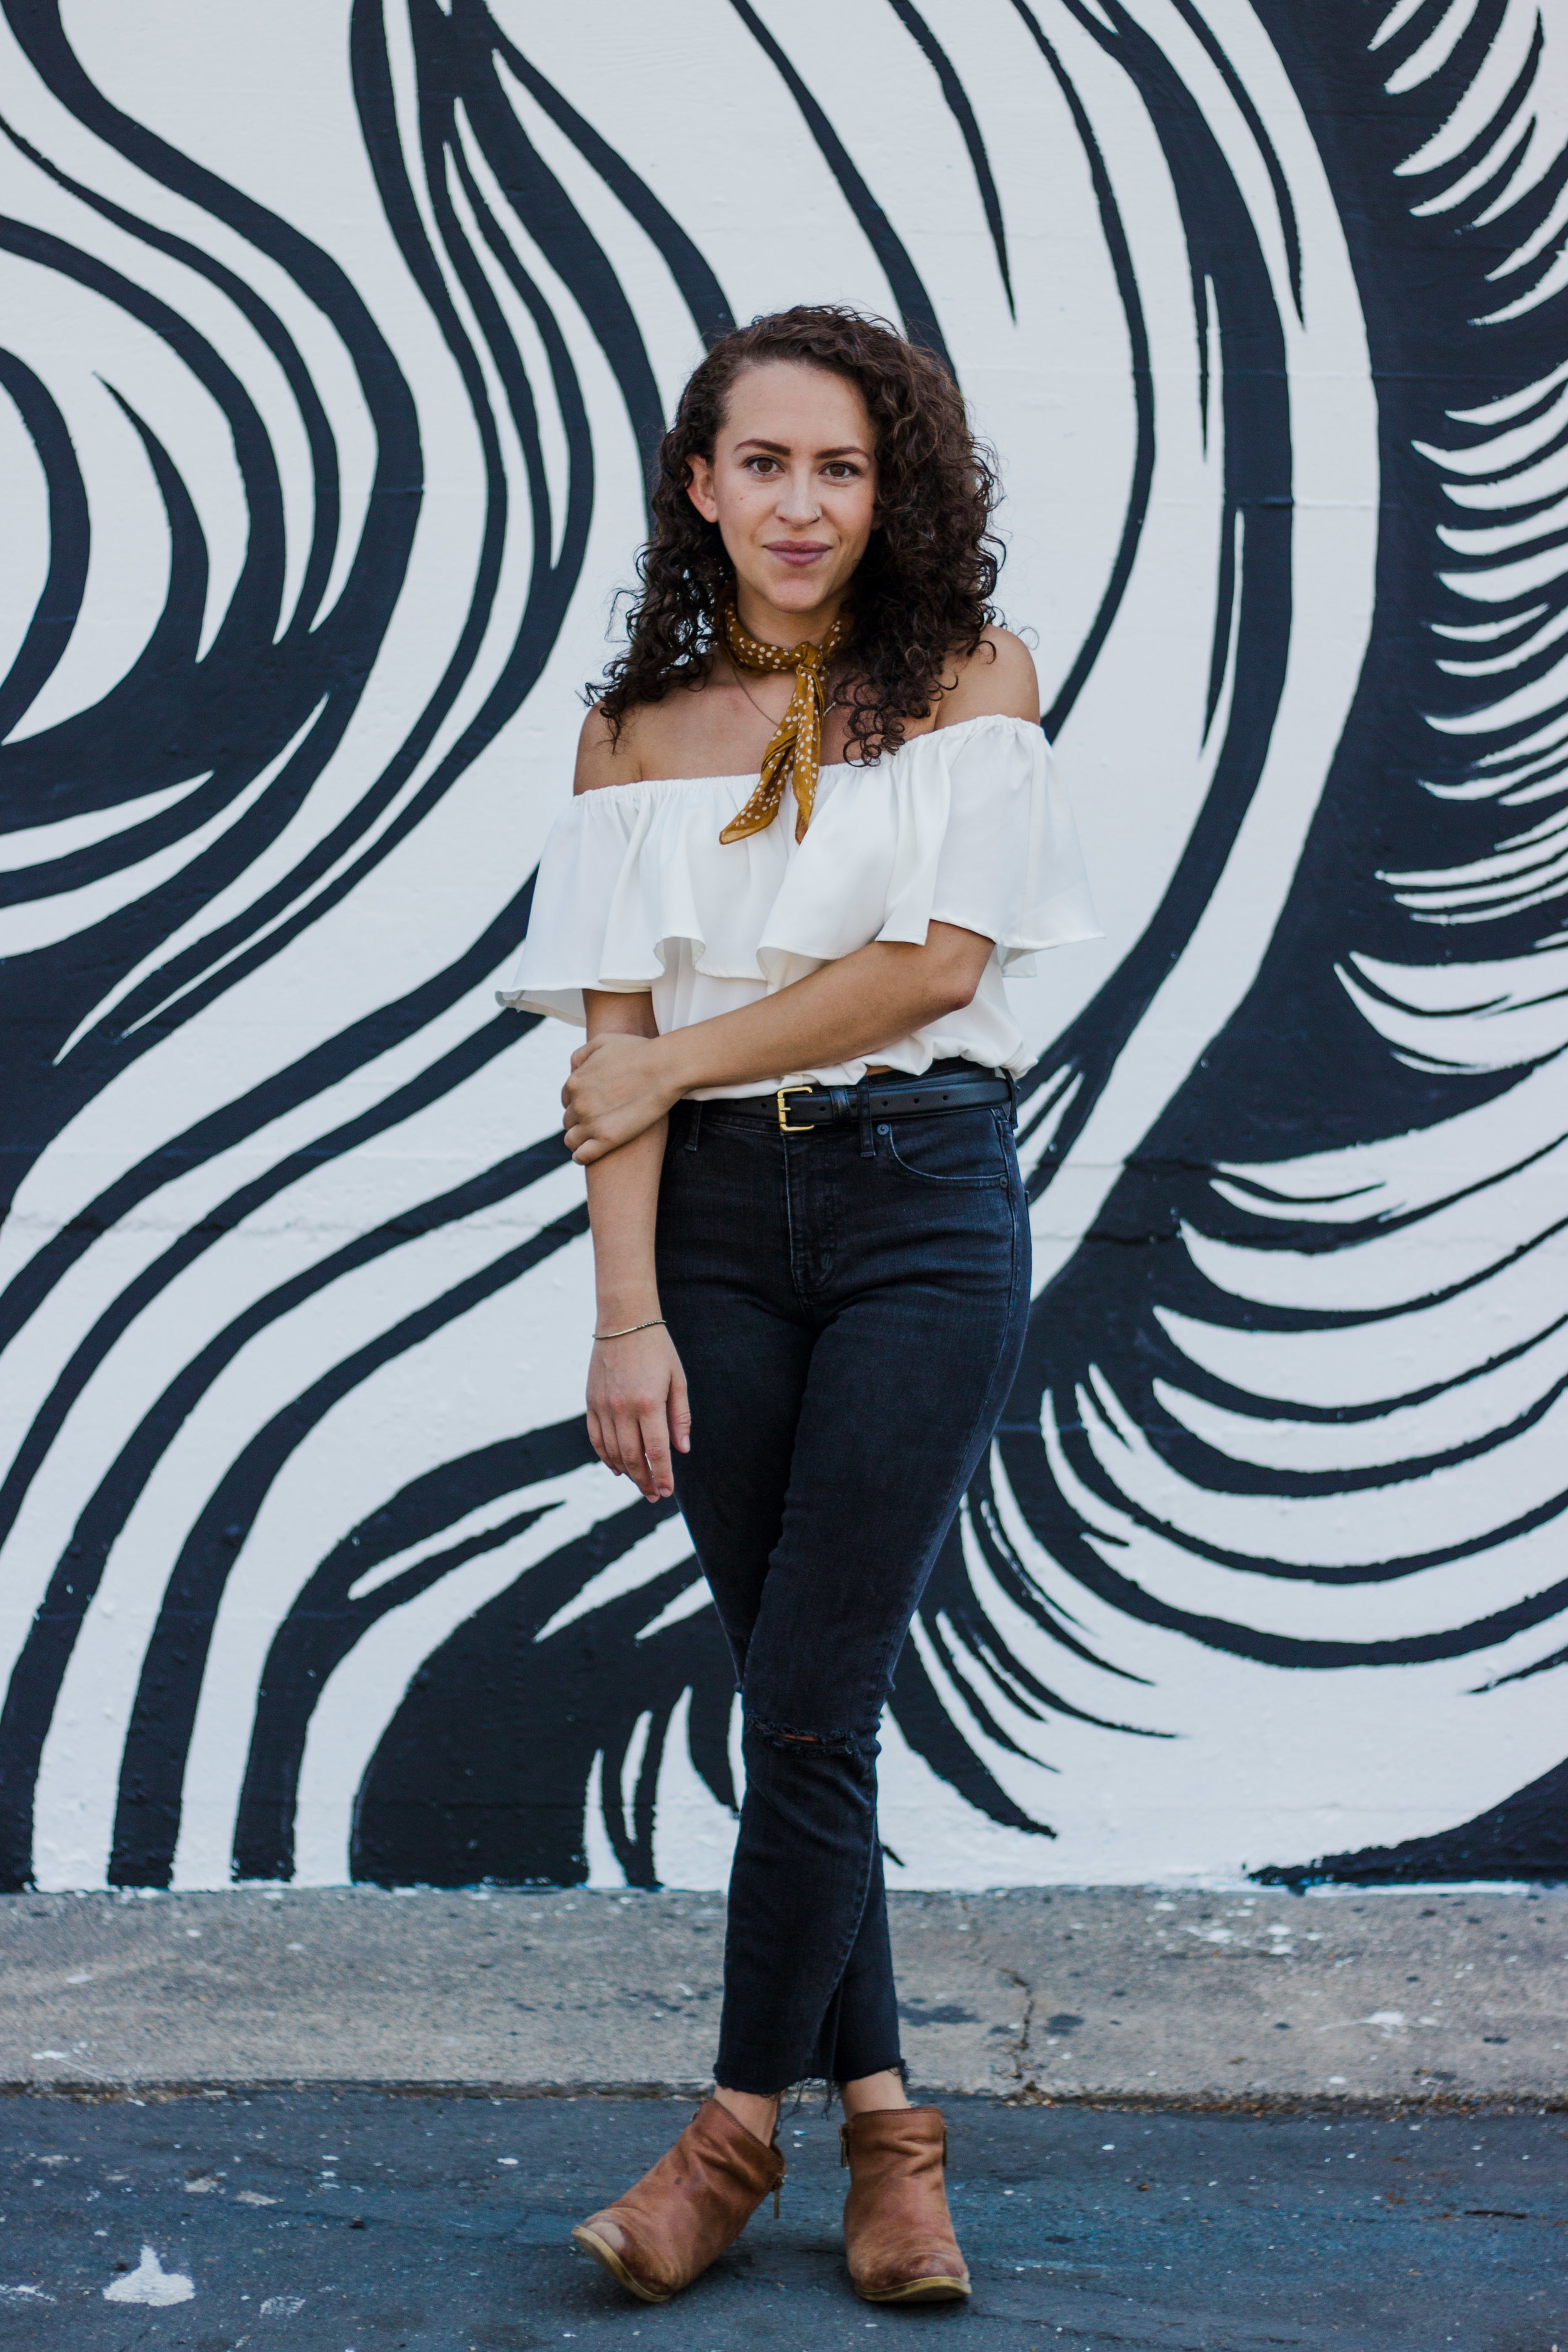 casual date night outfit -- black high rise skinny jeans (from madewell) worn with a white ruffled off the shoulder top, ankle boots and a bandana around the neck